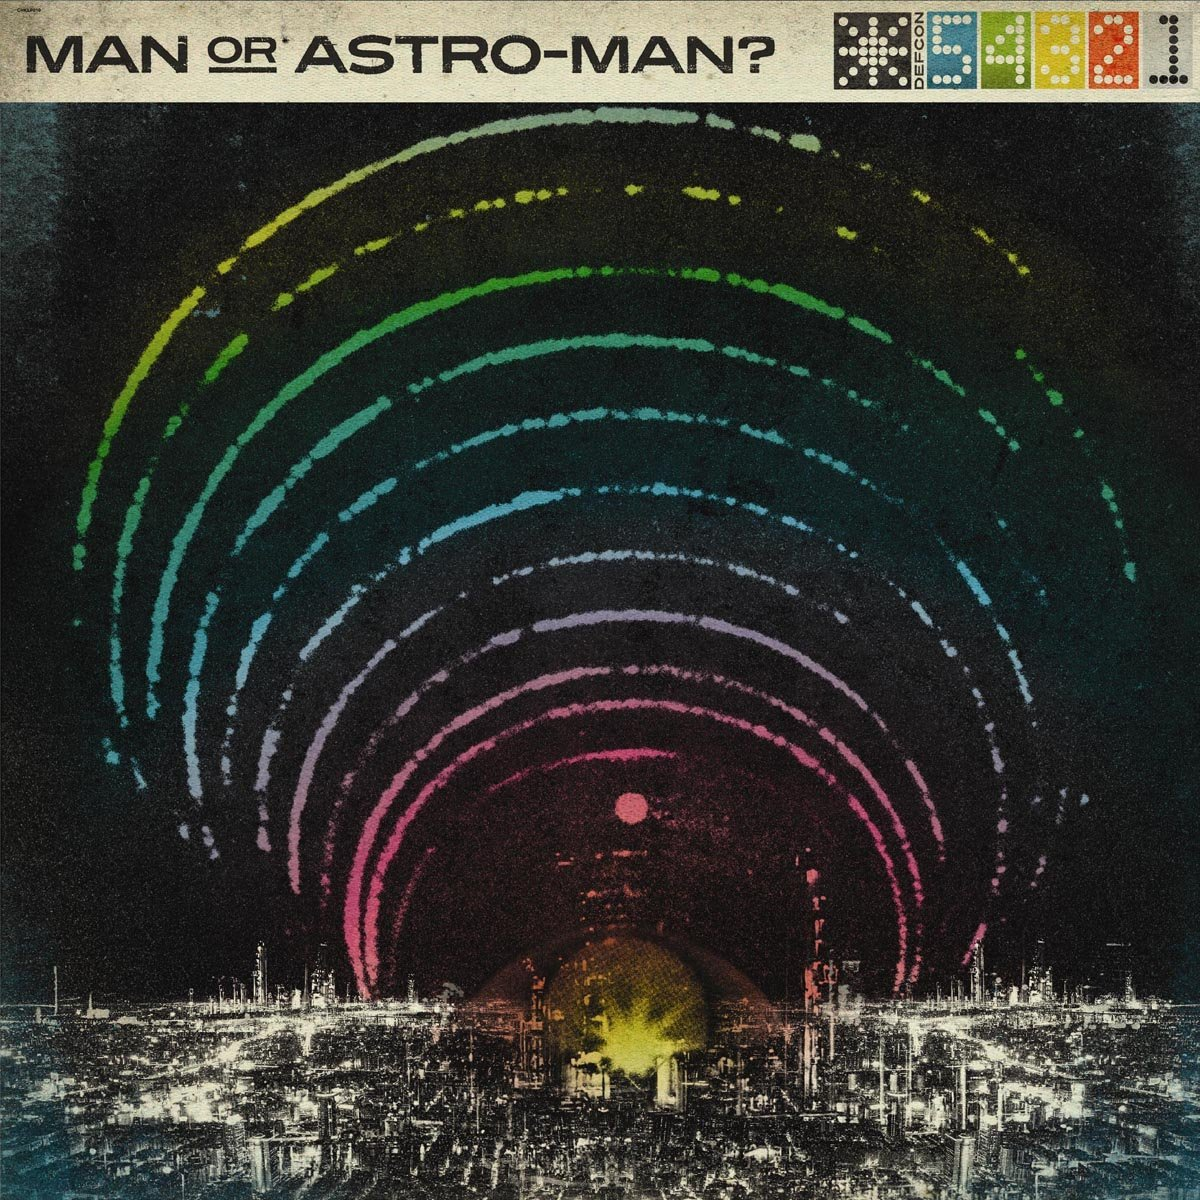 man-or-astro-man-defcon-cover